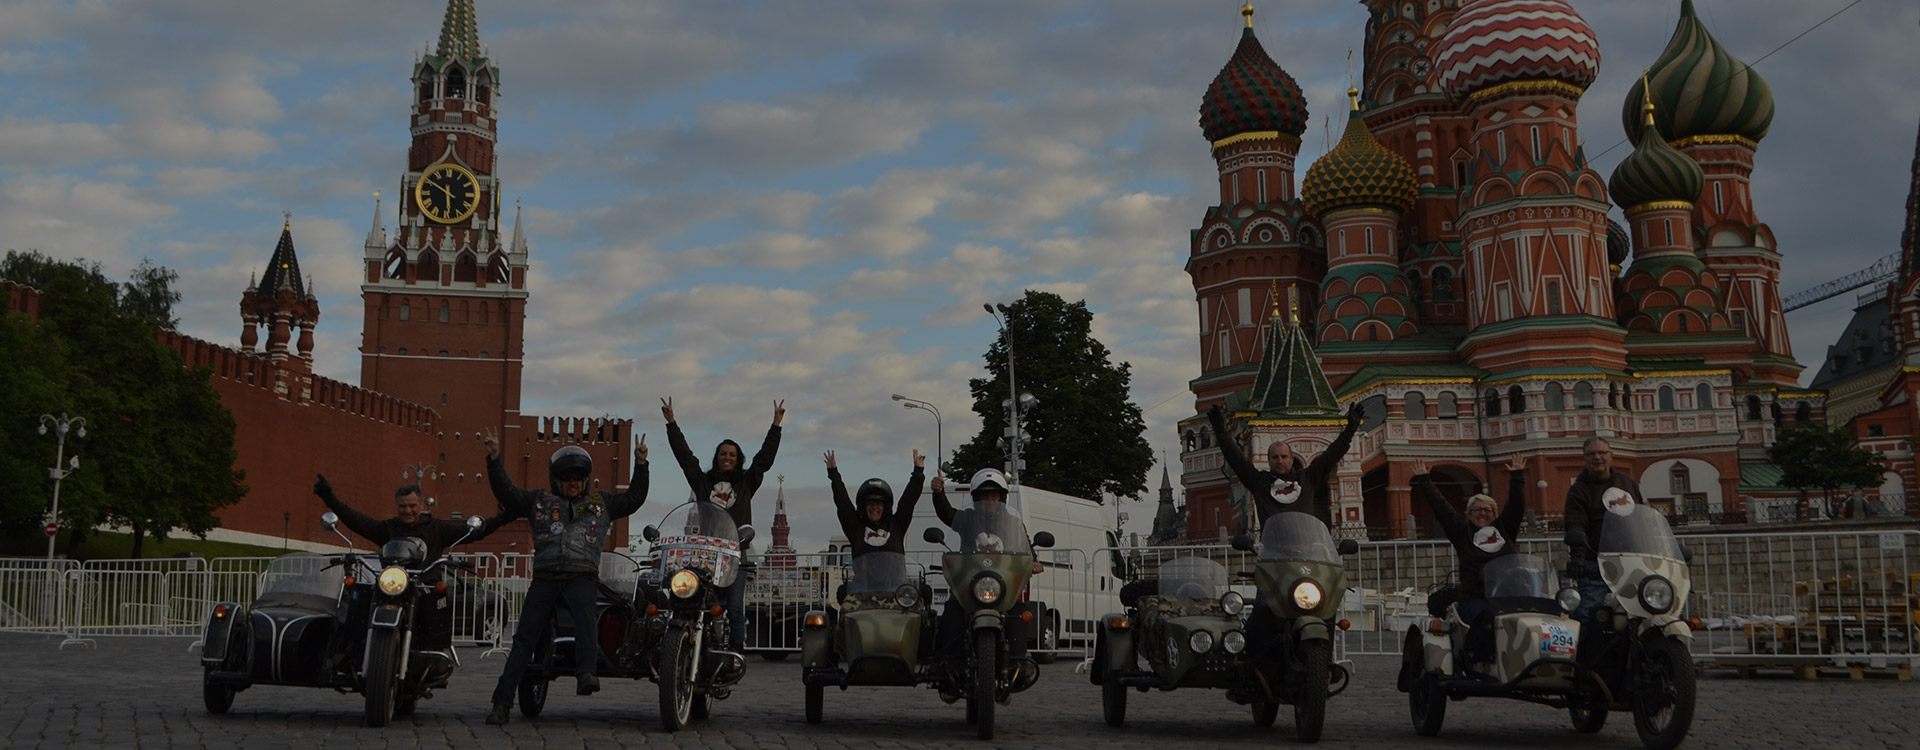 voyage-moto-russie-moscou-st-petersbourg-ural-bmw-gs-ride-n-be